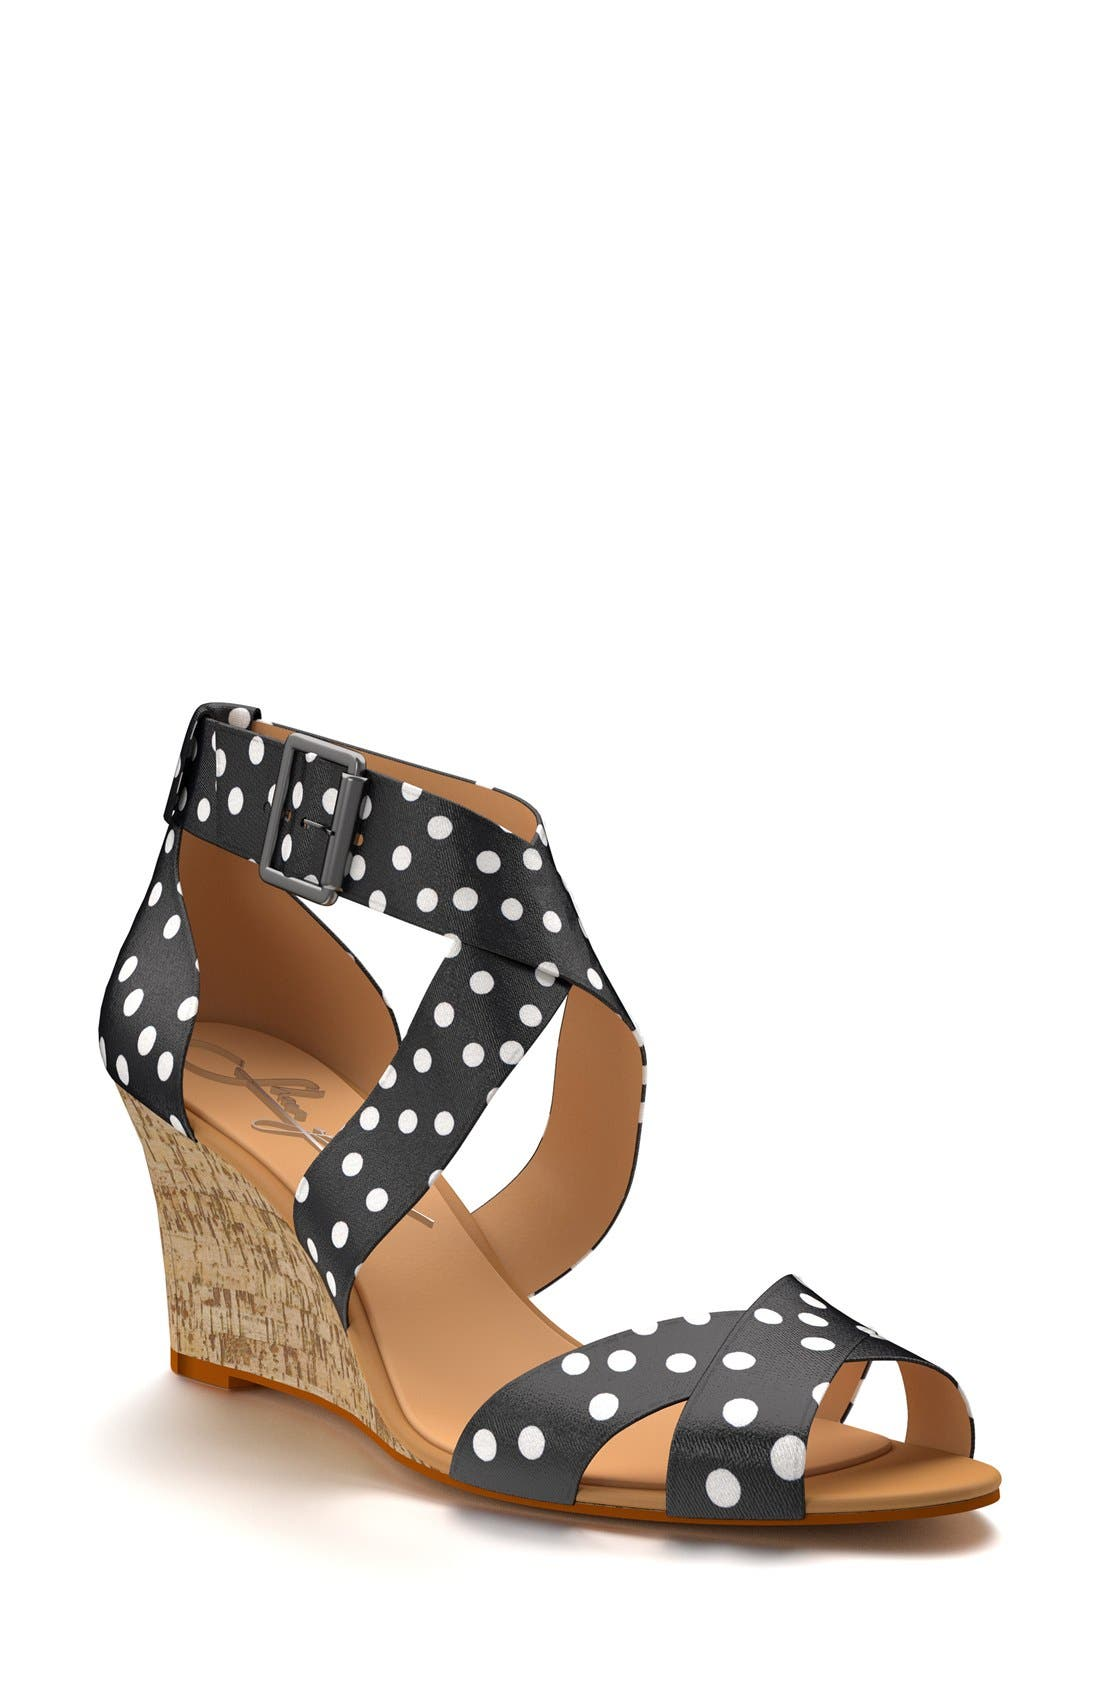 Alternate Image 1 Selected - Shoes of Prey Crisscross Strap Wedge Sandal (Women)